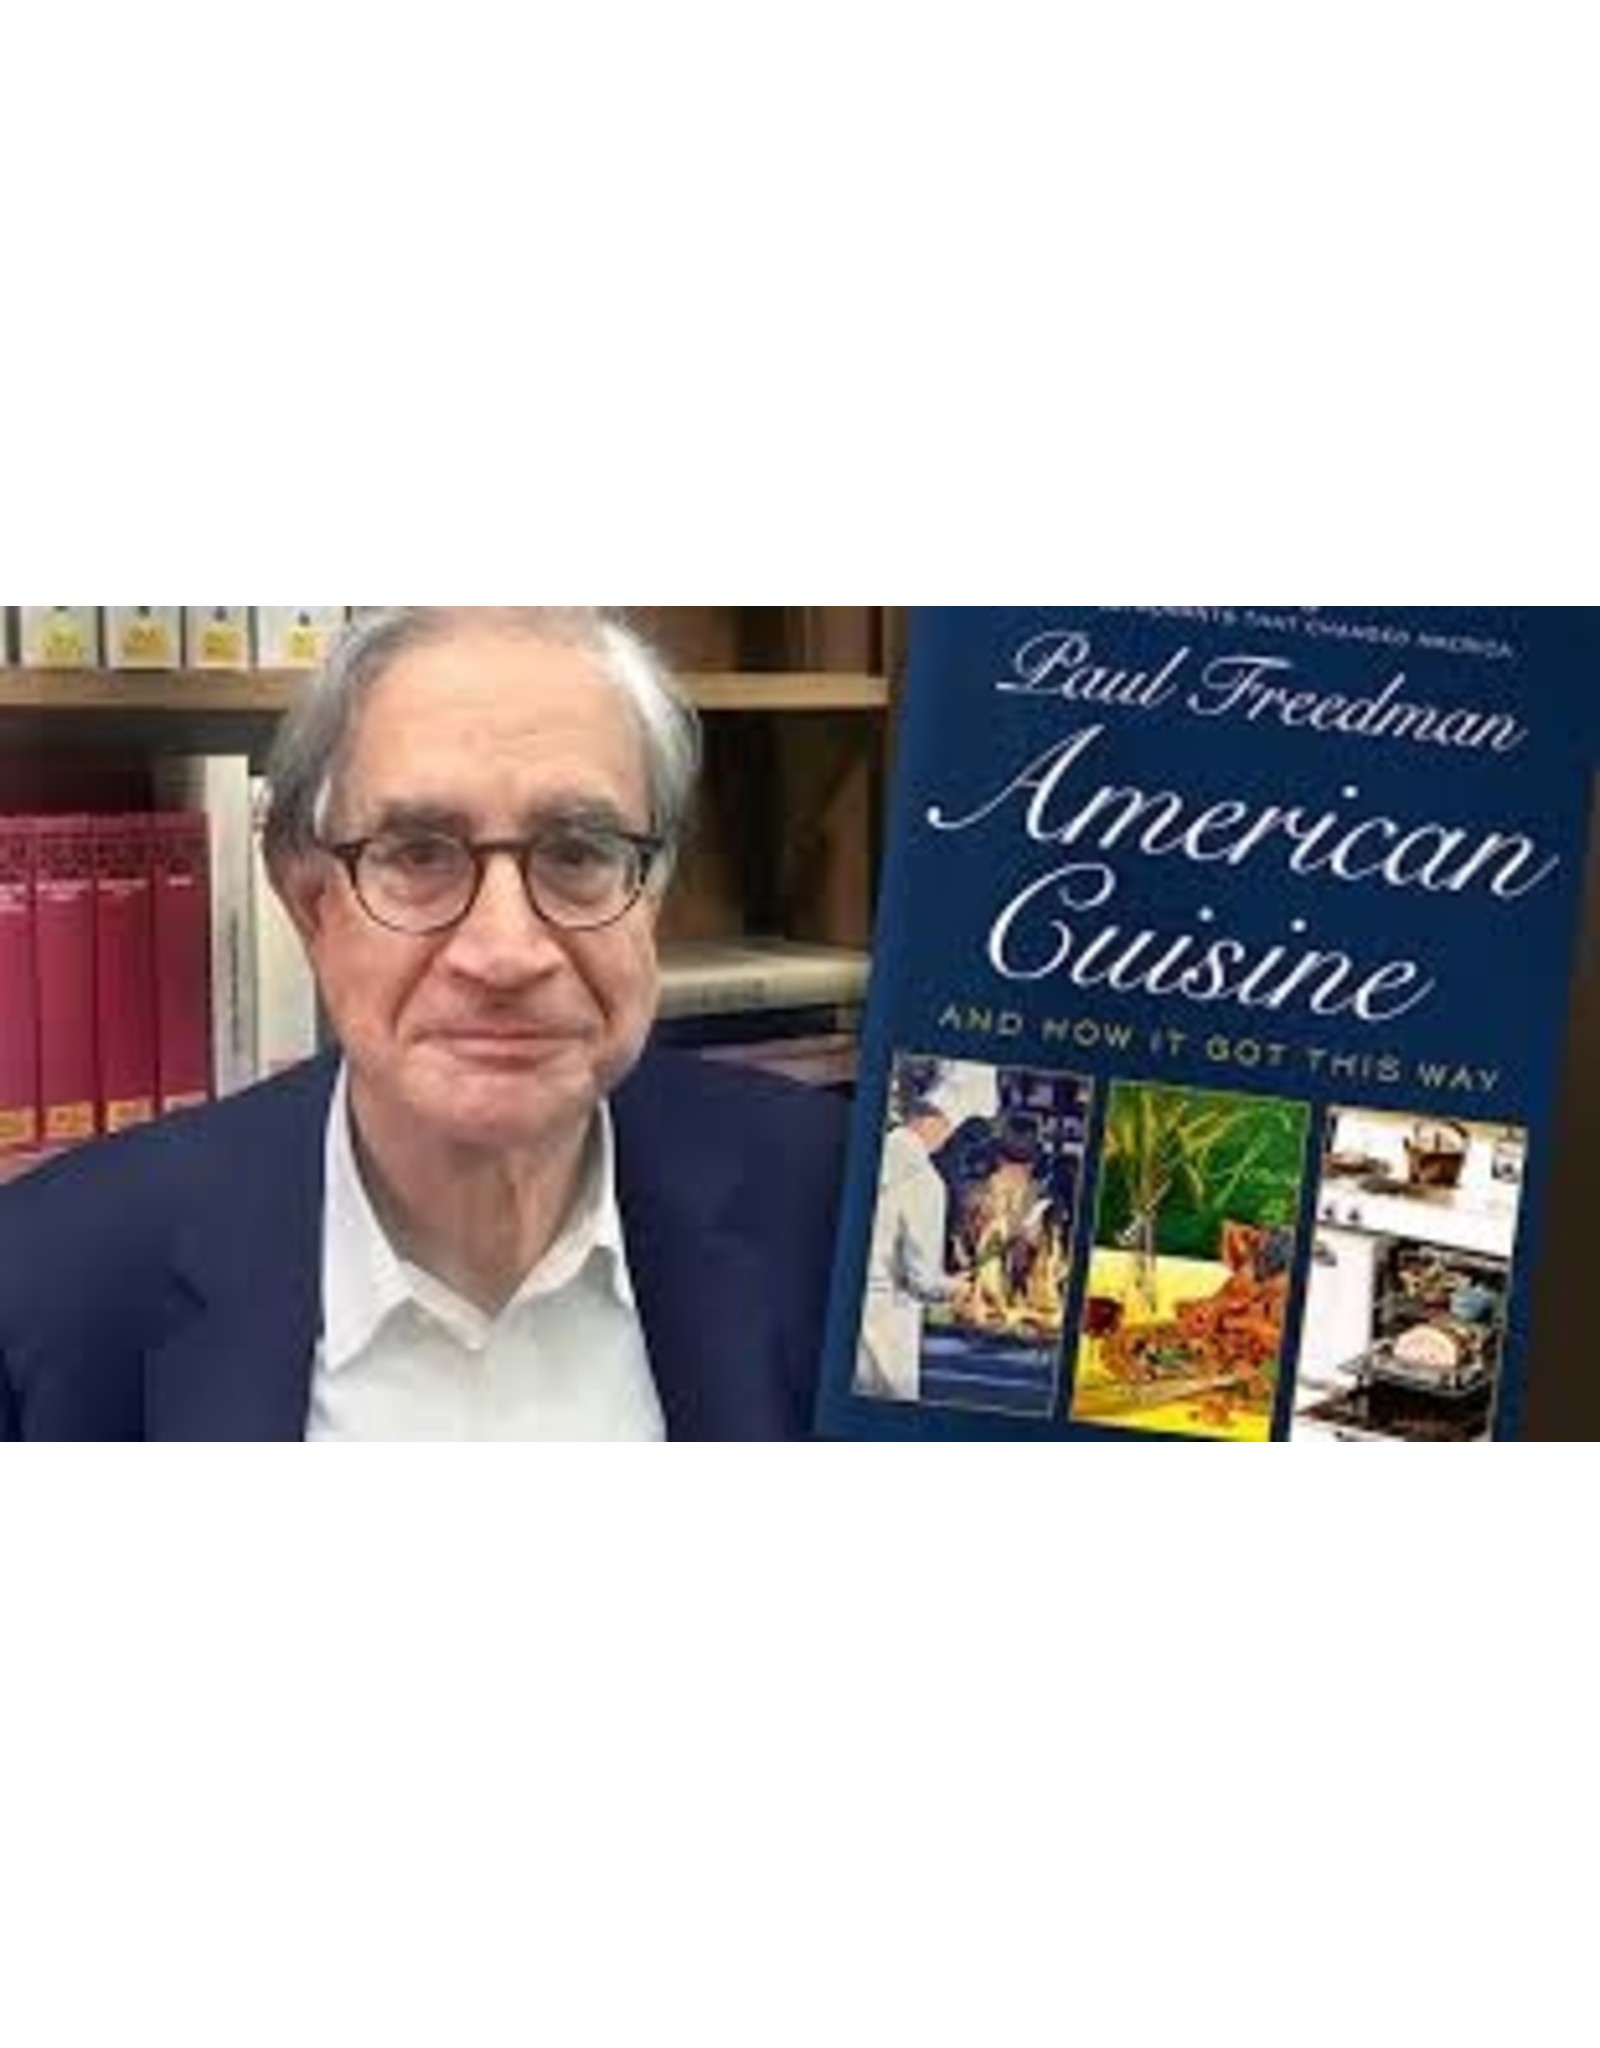 Books American Cuisine : And How It Got That Way by Paul Freeman